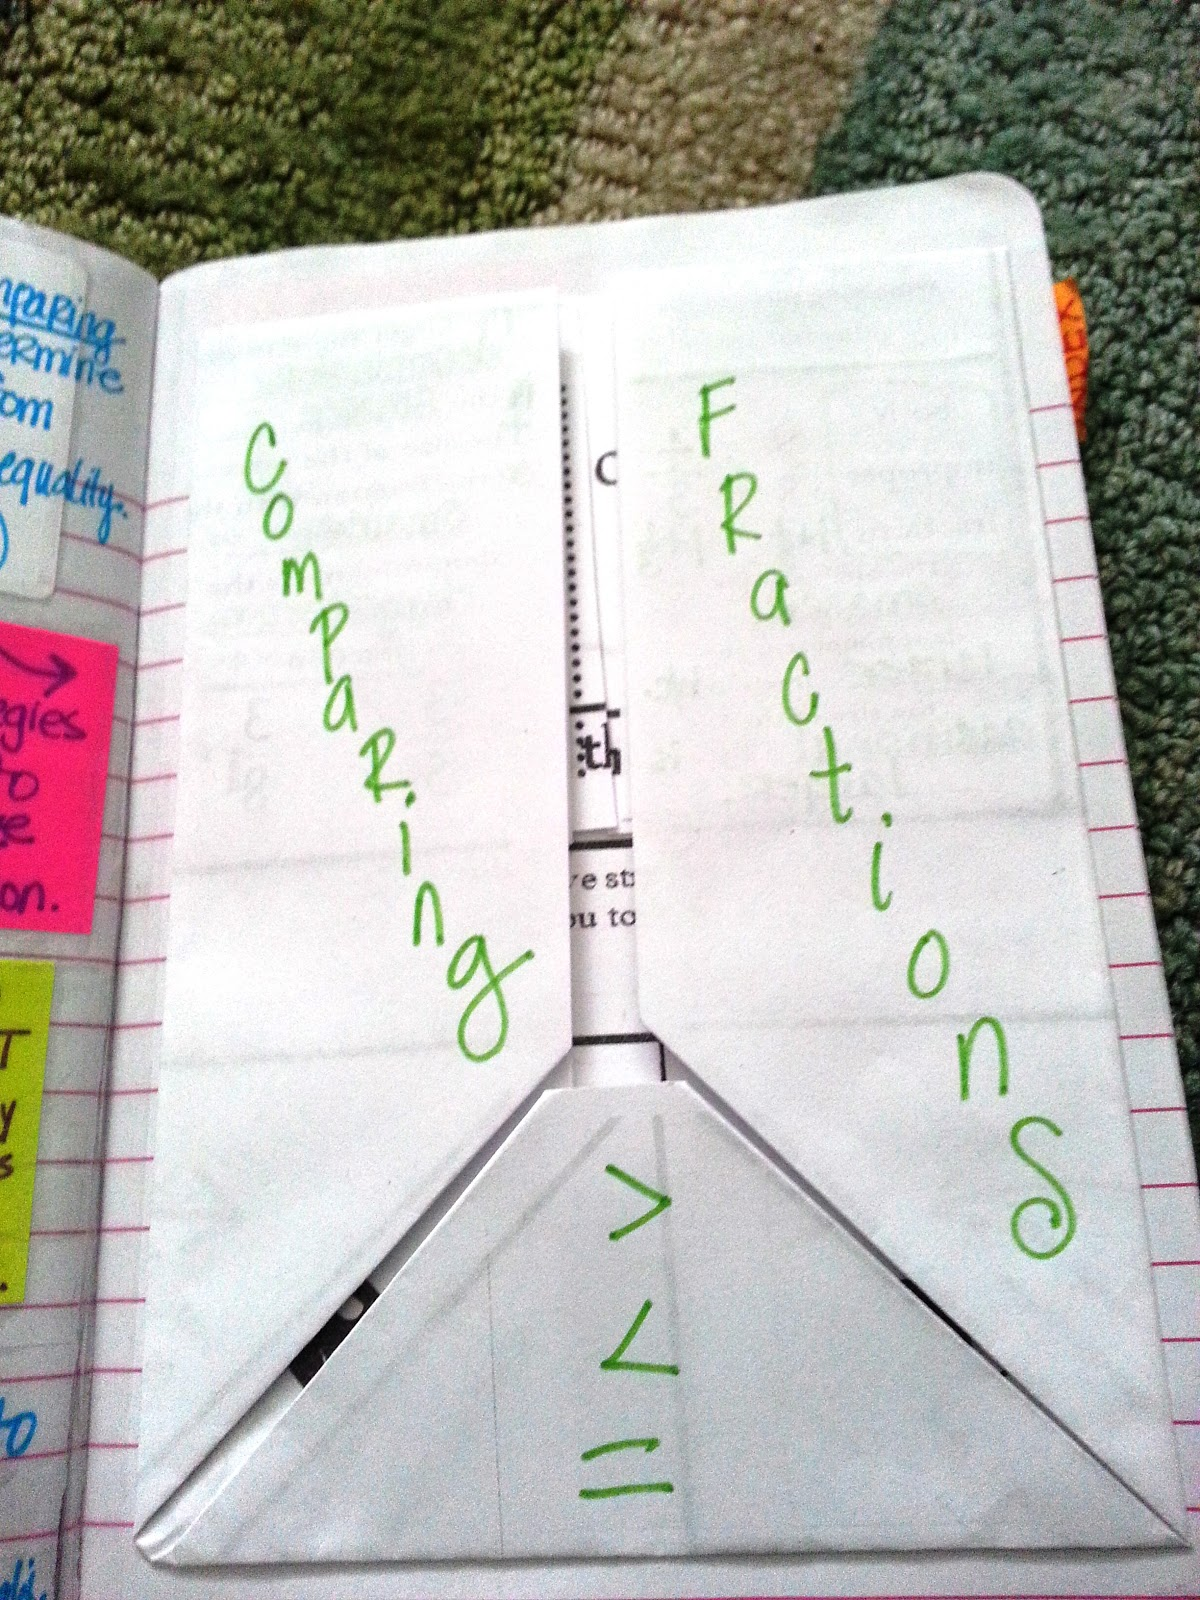 I Ve Got A Foldable For That Comparing Fractions